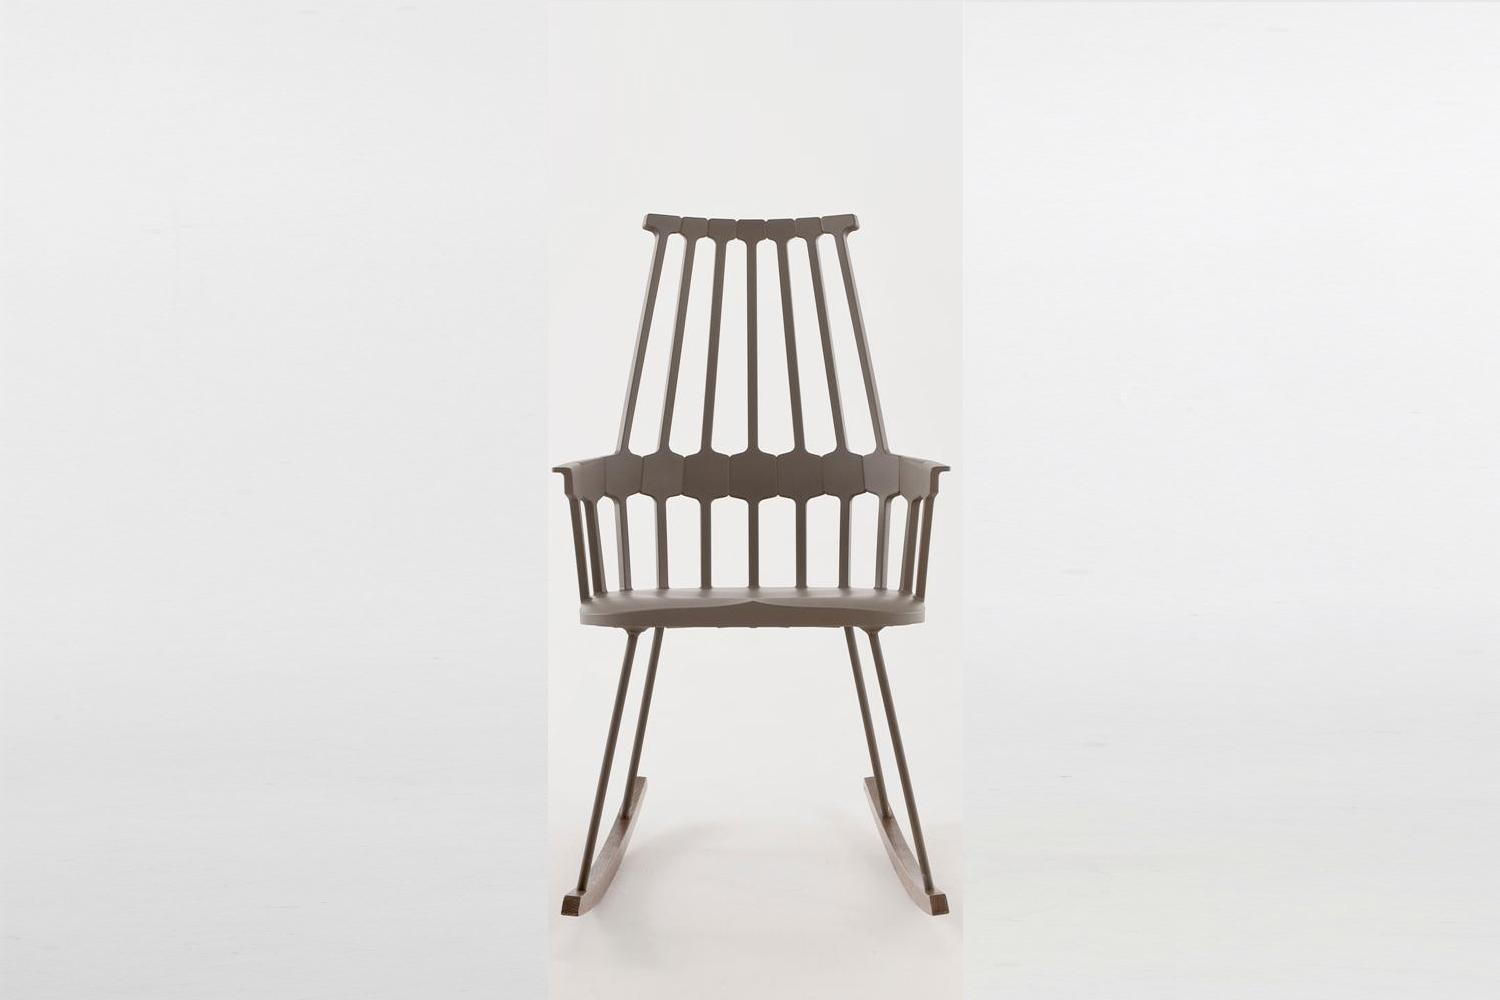 Comback Rocking Chair by Patricia Urquiola for Kartell